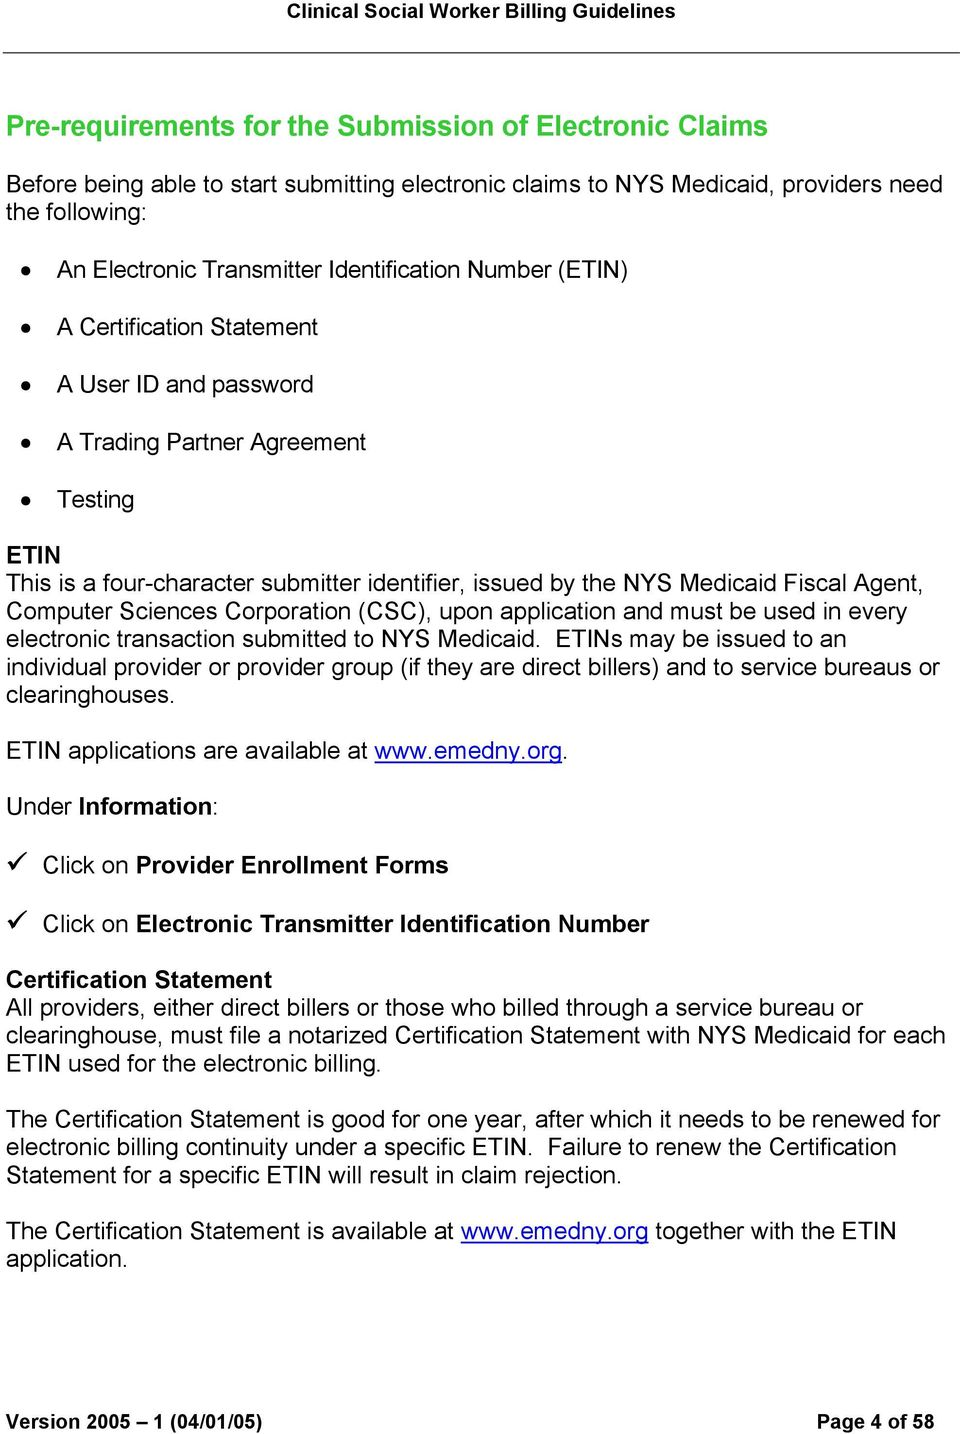 identifier, issued by the NYS Medicaid Fiscal Agent, Computer Sciences Corporation (CSC), upon application and must be used in every electronic transaction submitted to NYS Medicaid.